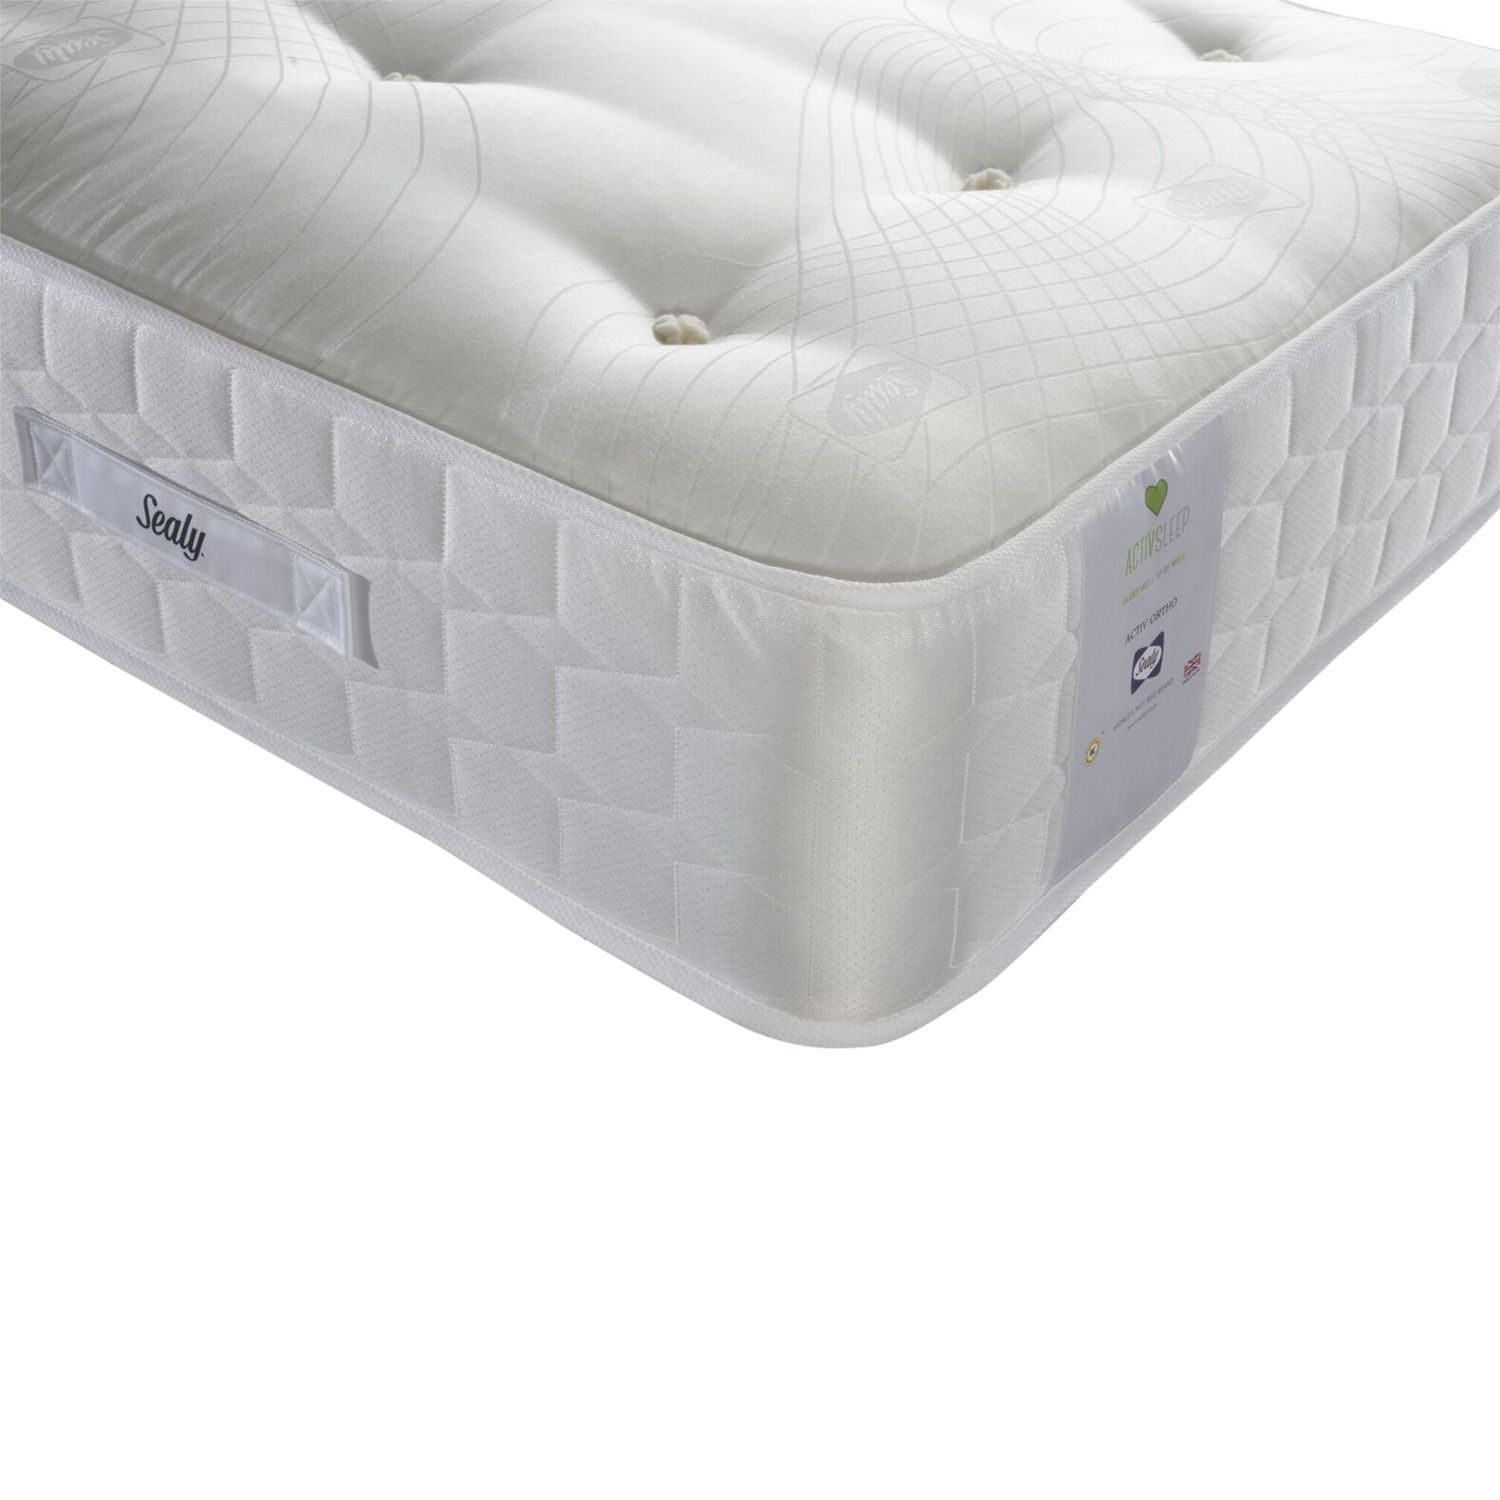 Sealy Sealy Activ Ortho Mattress, Single